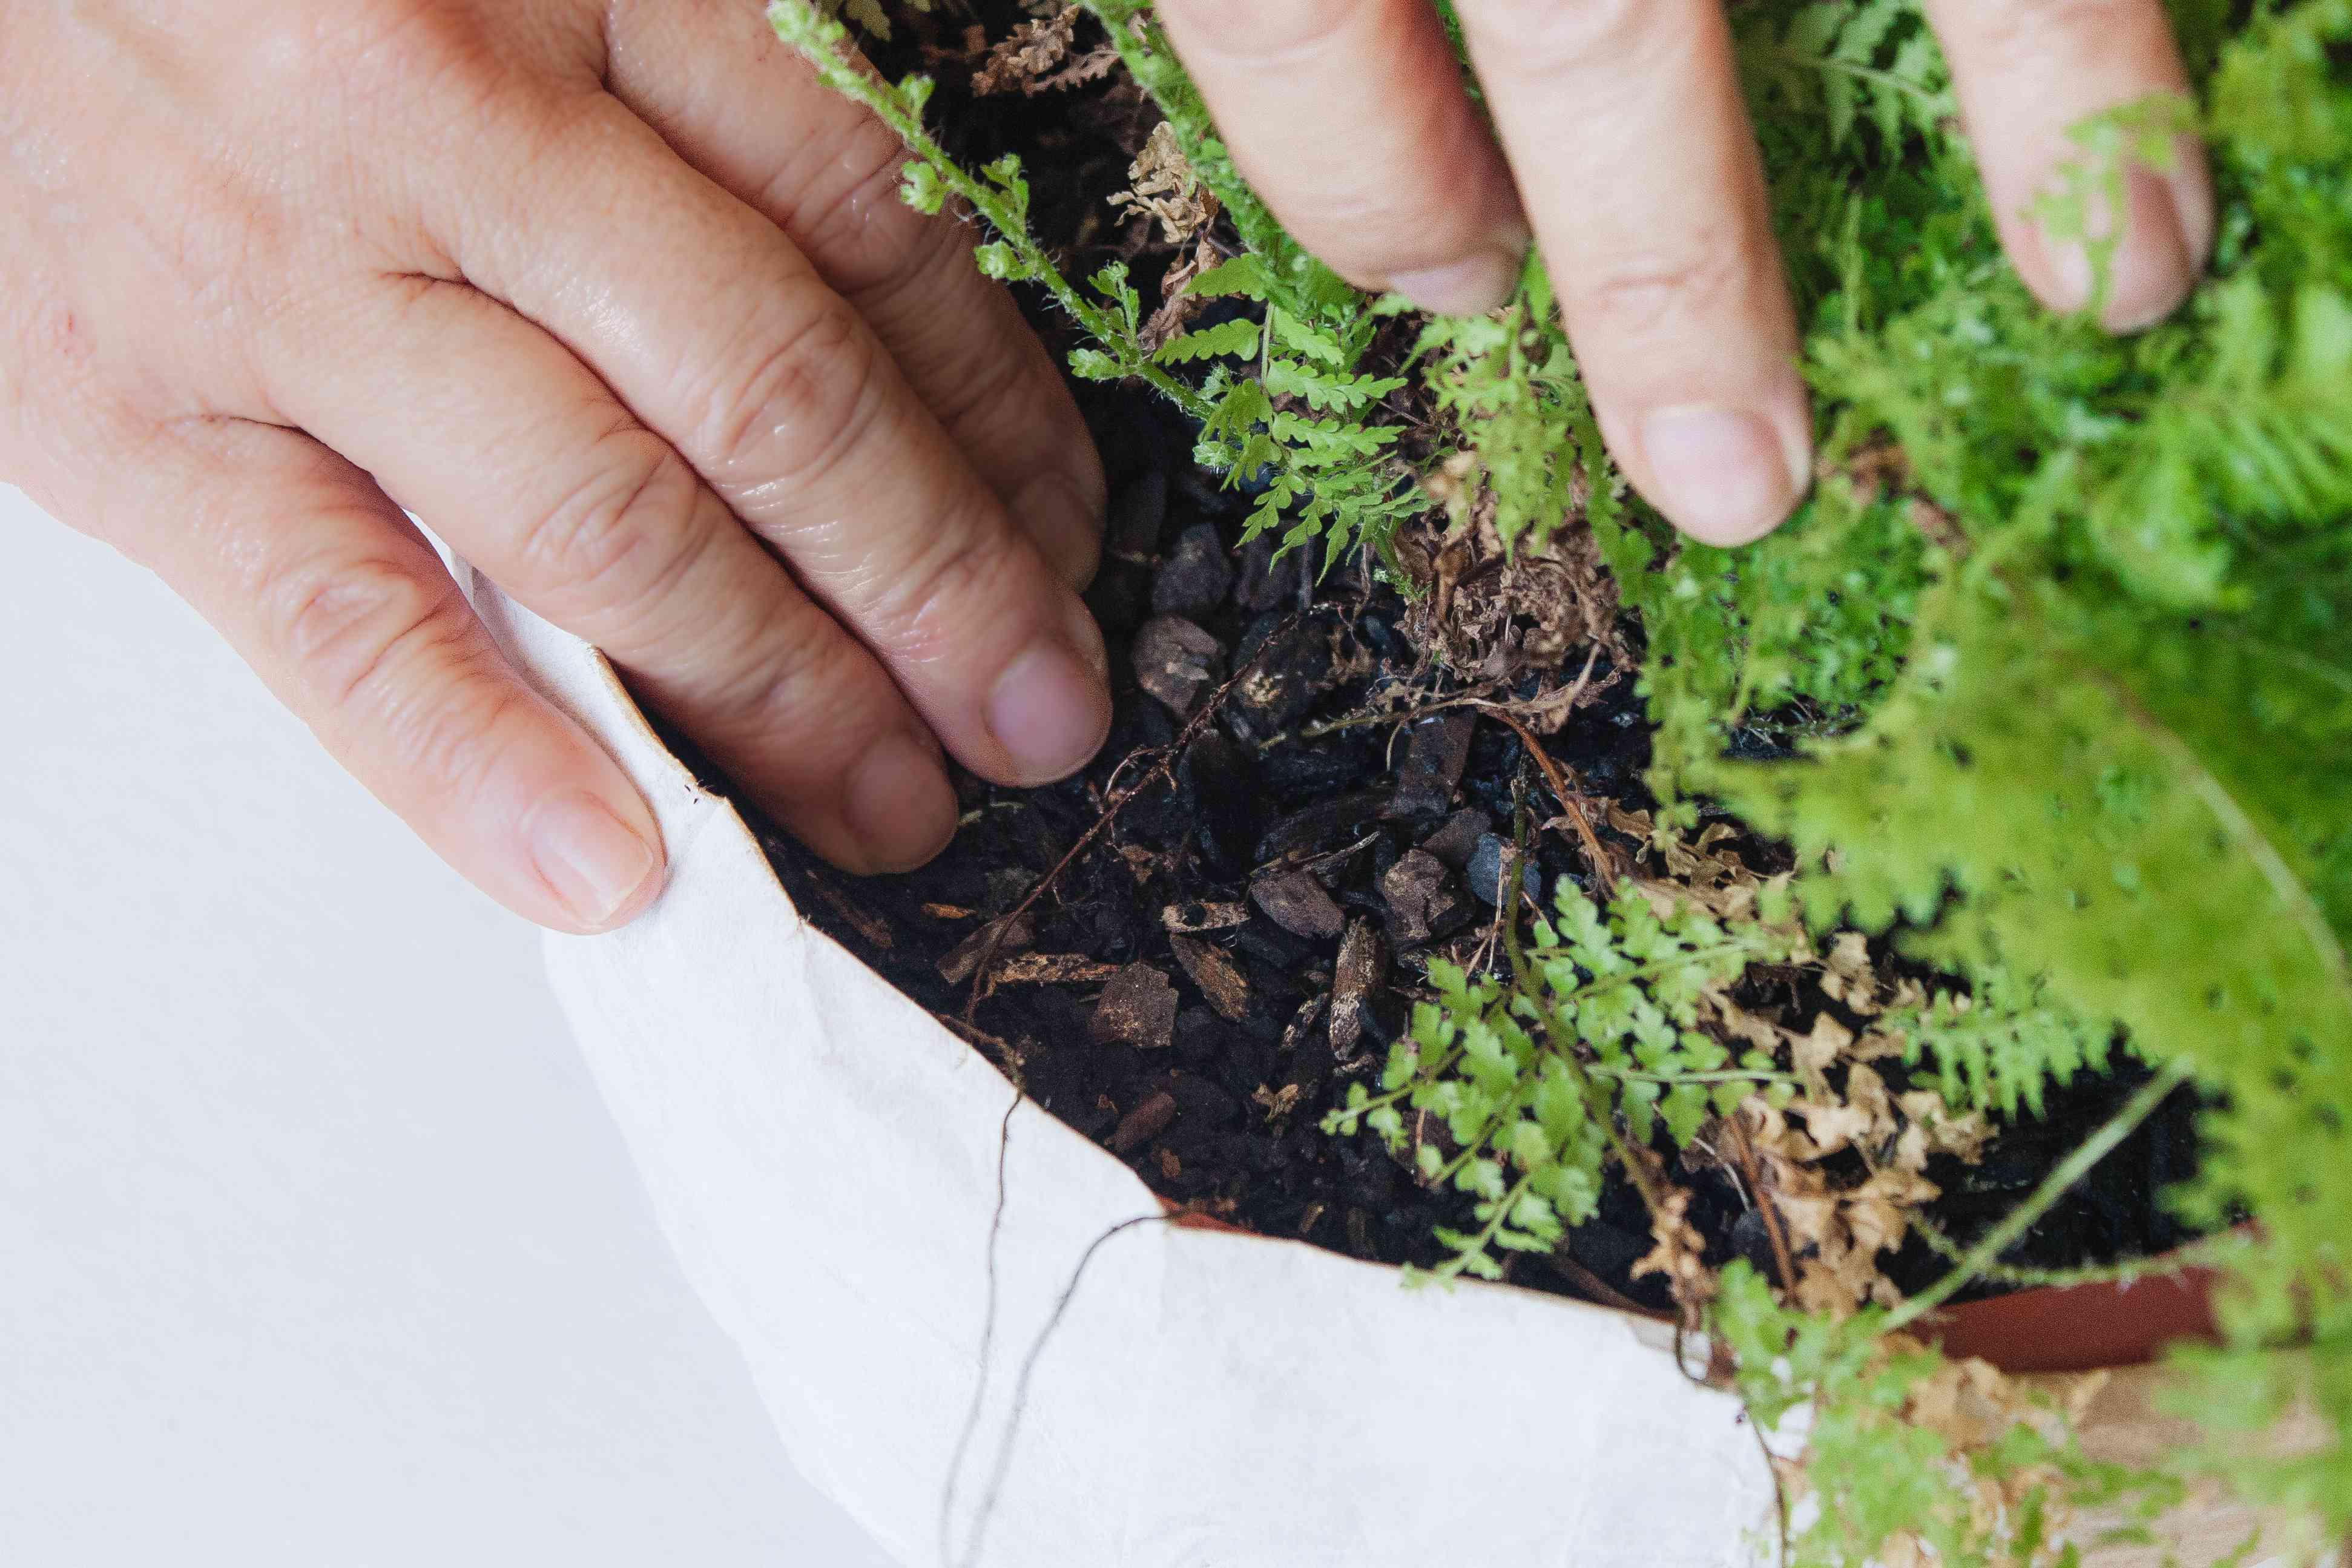 person feeling soil for dampness